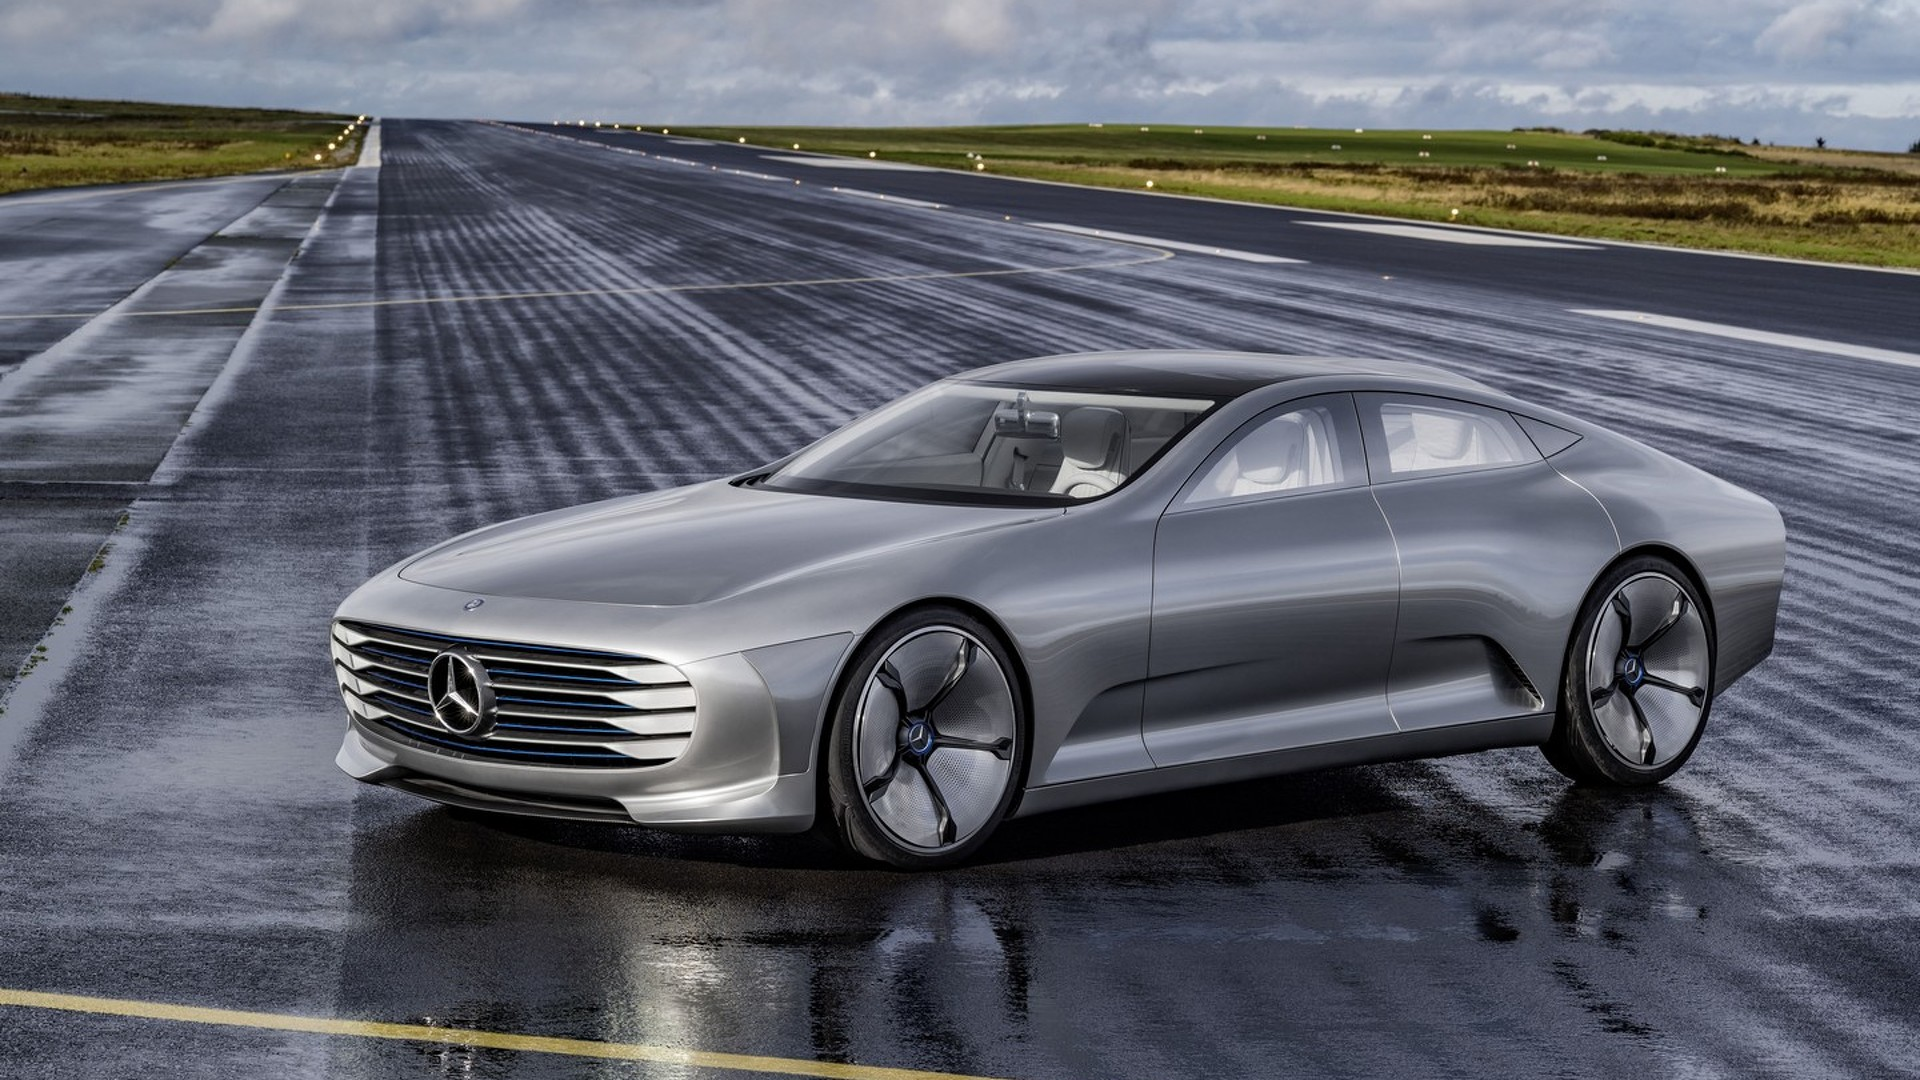 Mercedes Benz Concept Iaa New Pics And Videos From Siegerland Airport